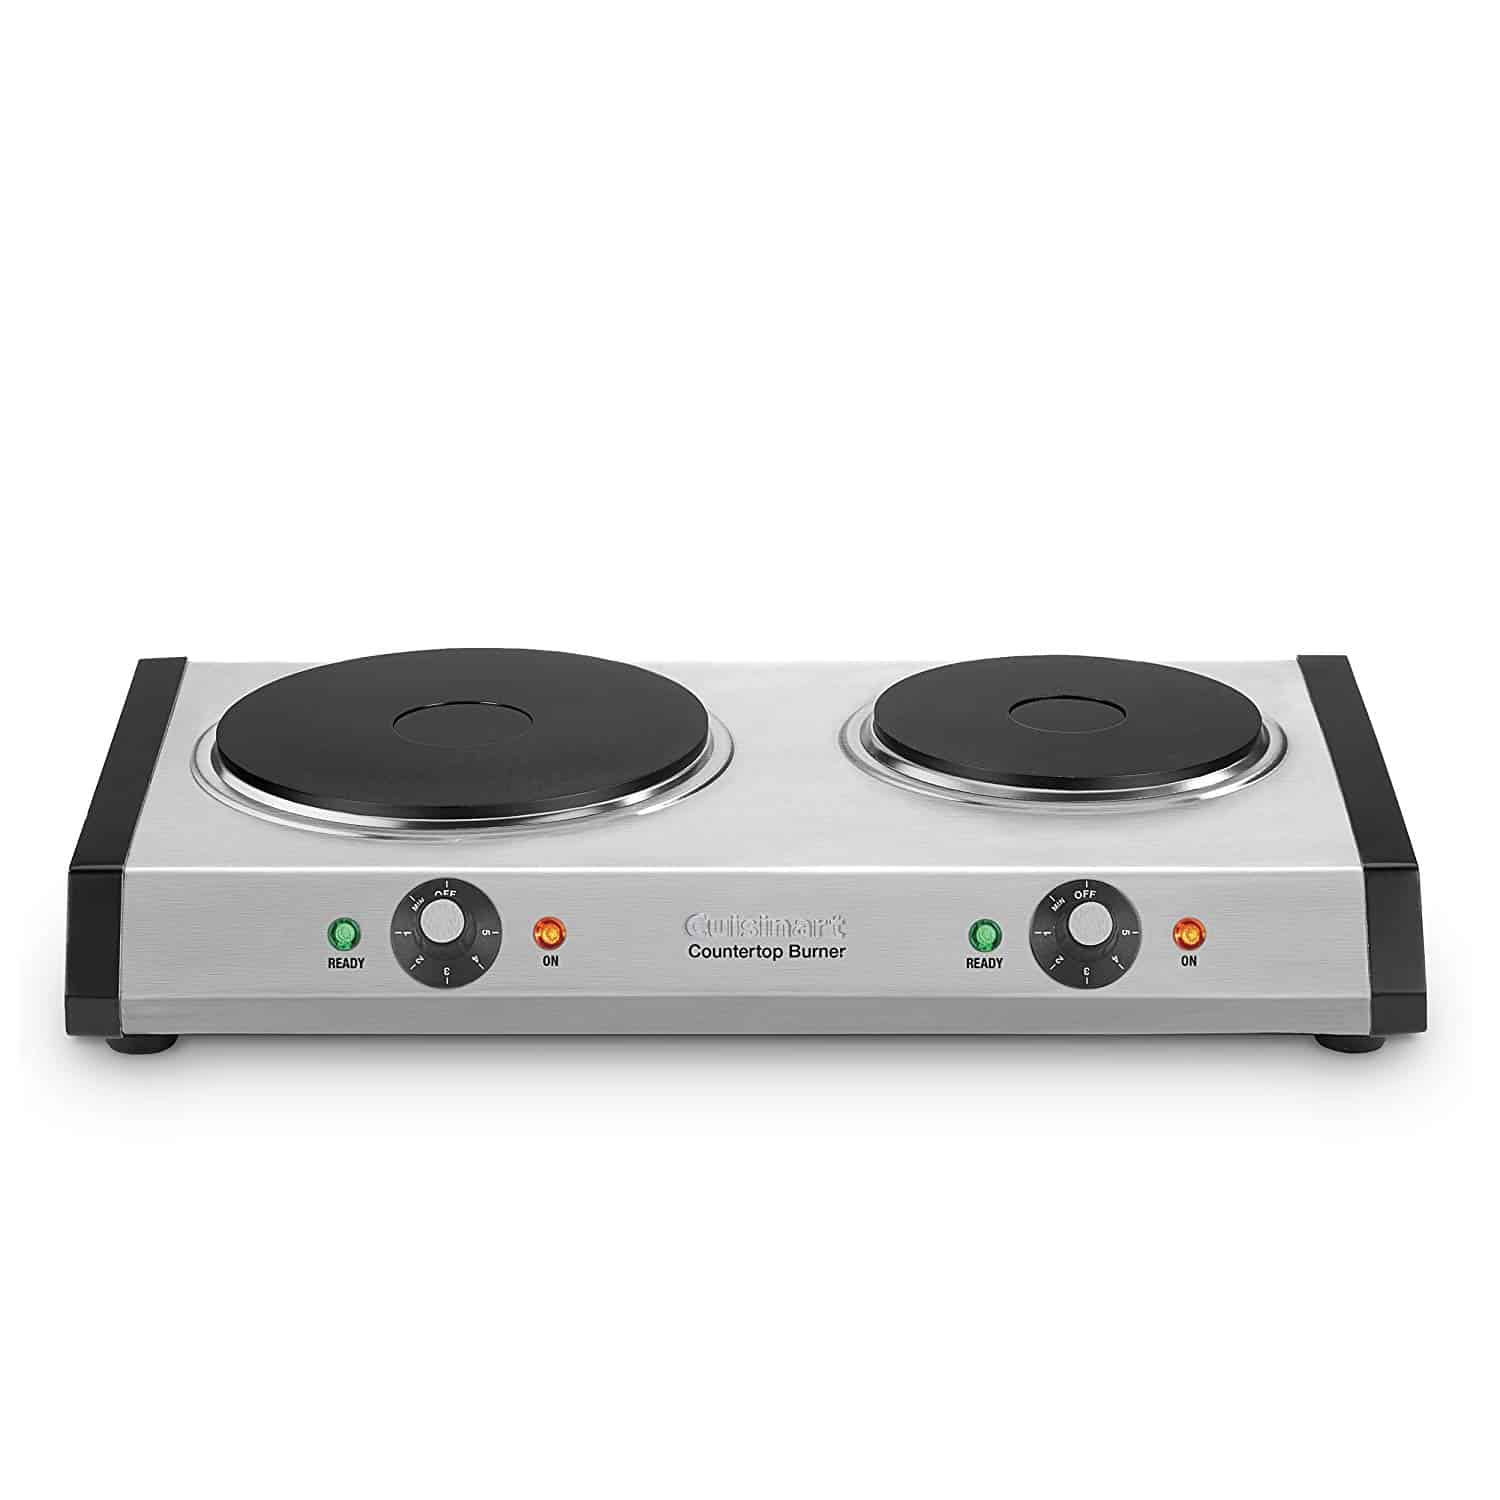 Cuisinart Double Burner Cooktop